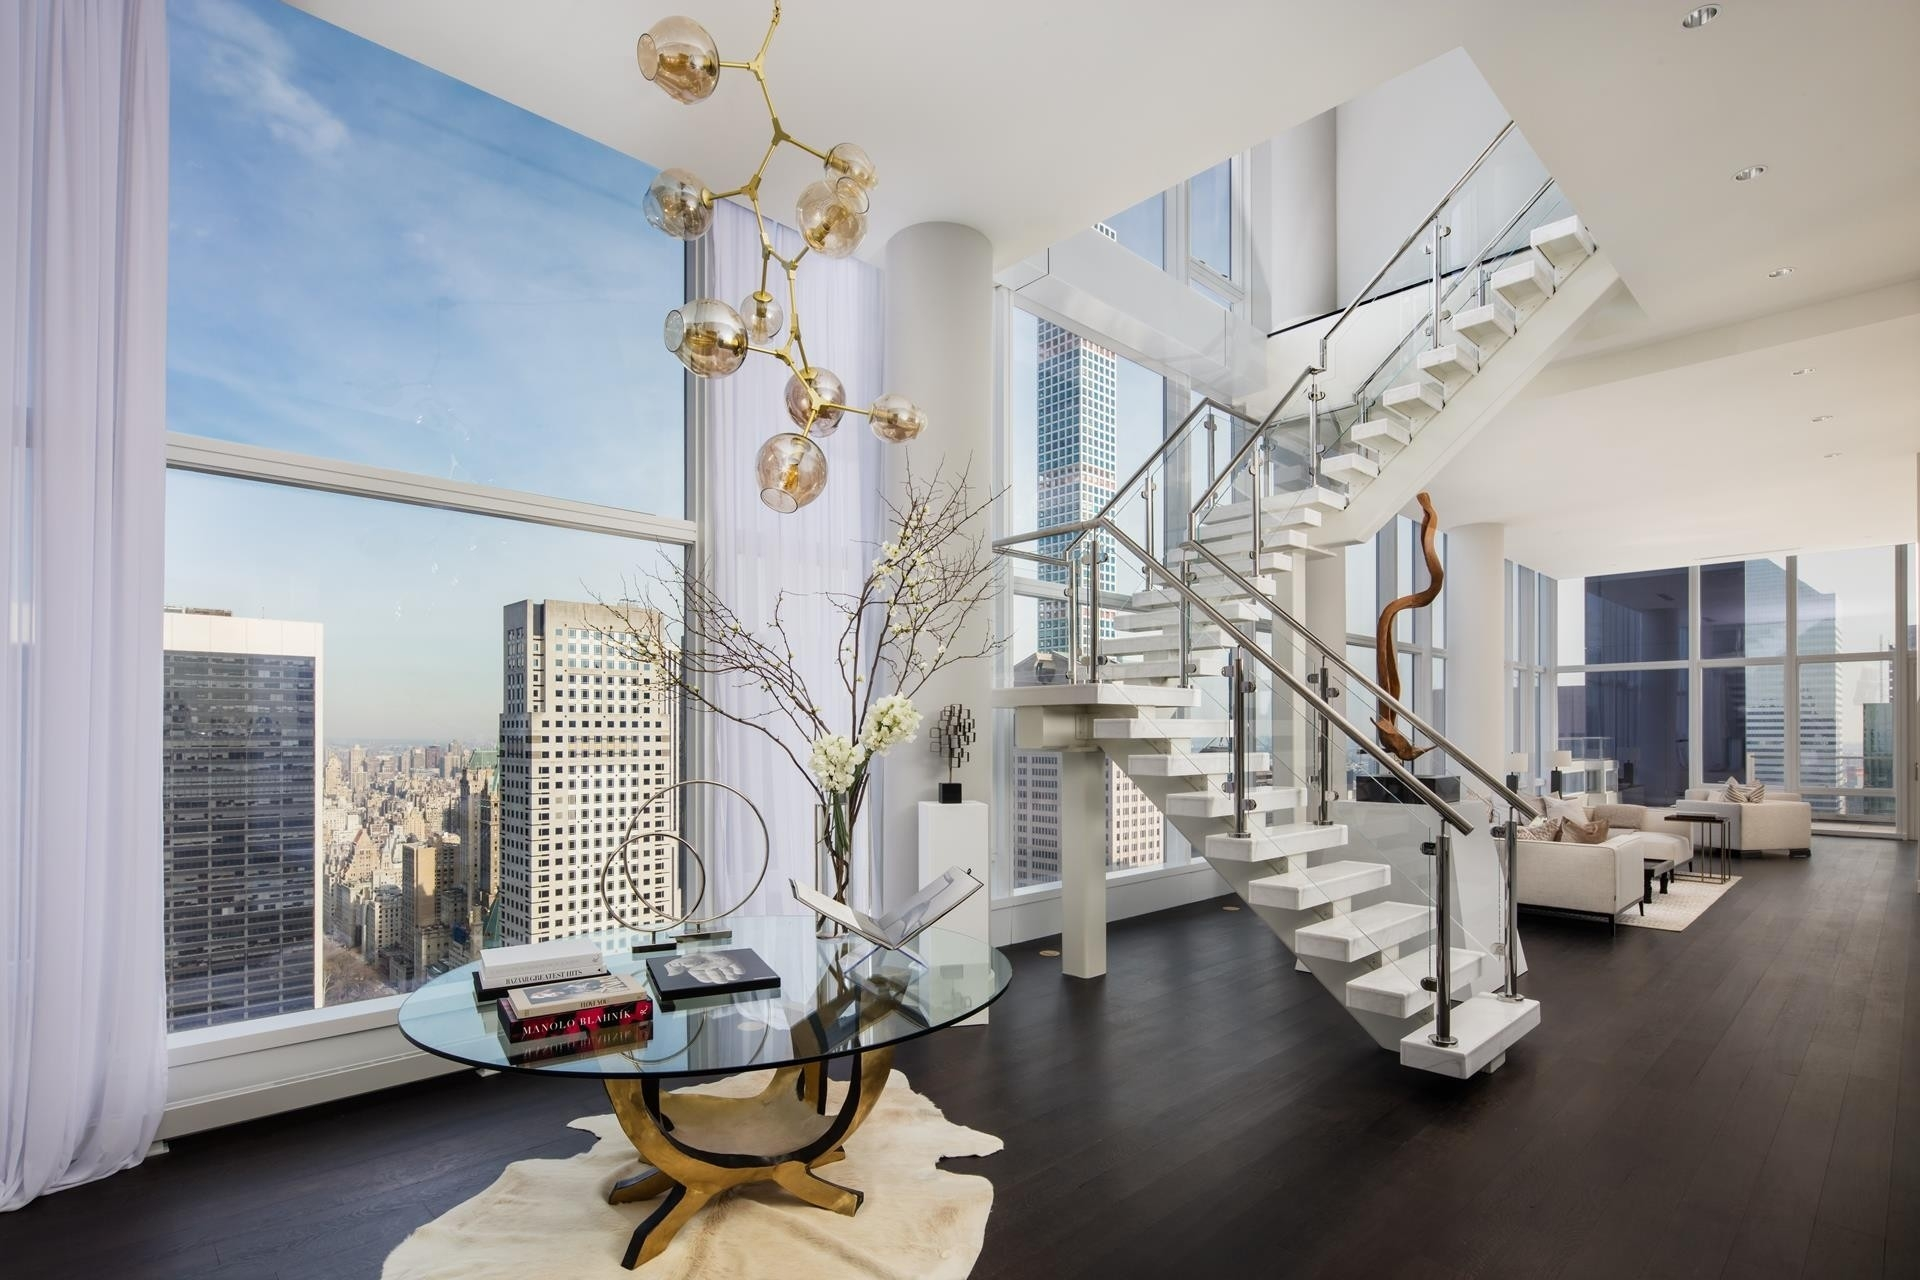 2. Condominiums for Sale at BACCARAT HOTEL & RESIDENCES, 20 West 53rd St, PH48/49 Midtown West, New York, NY 10019